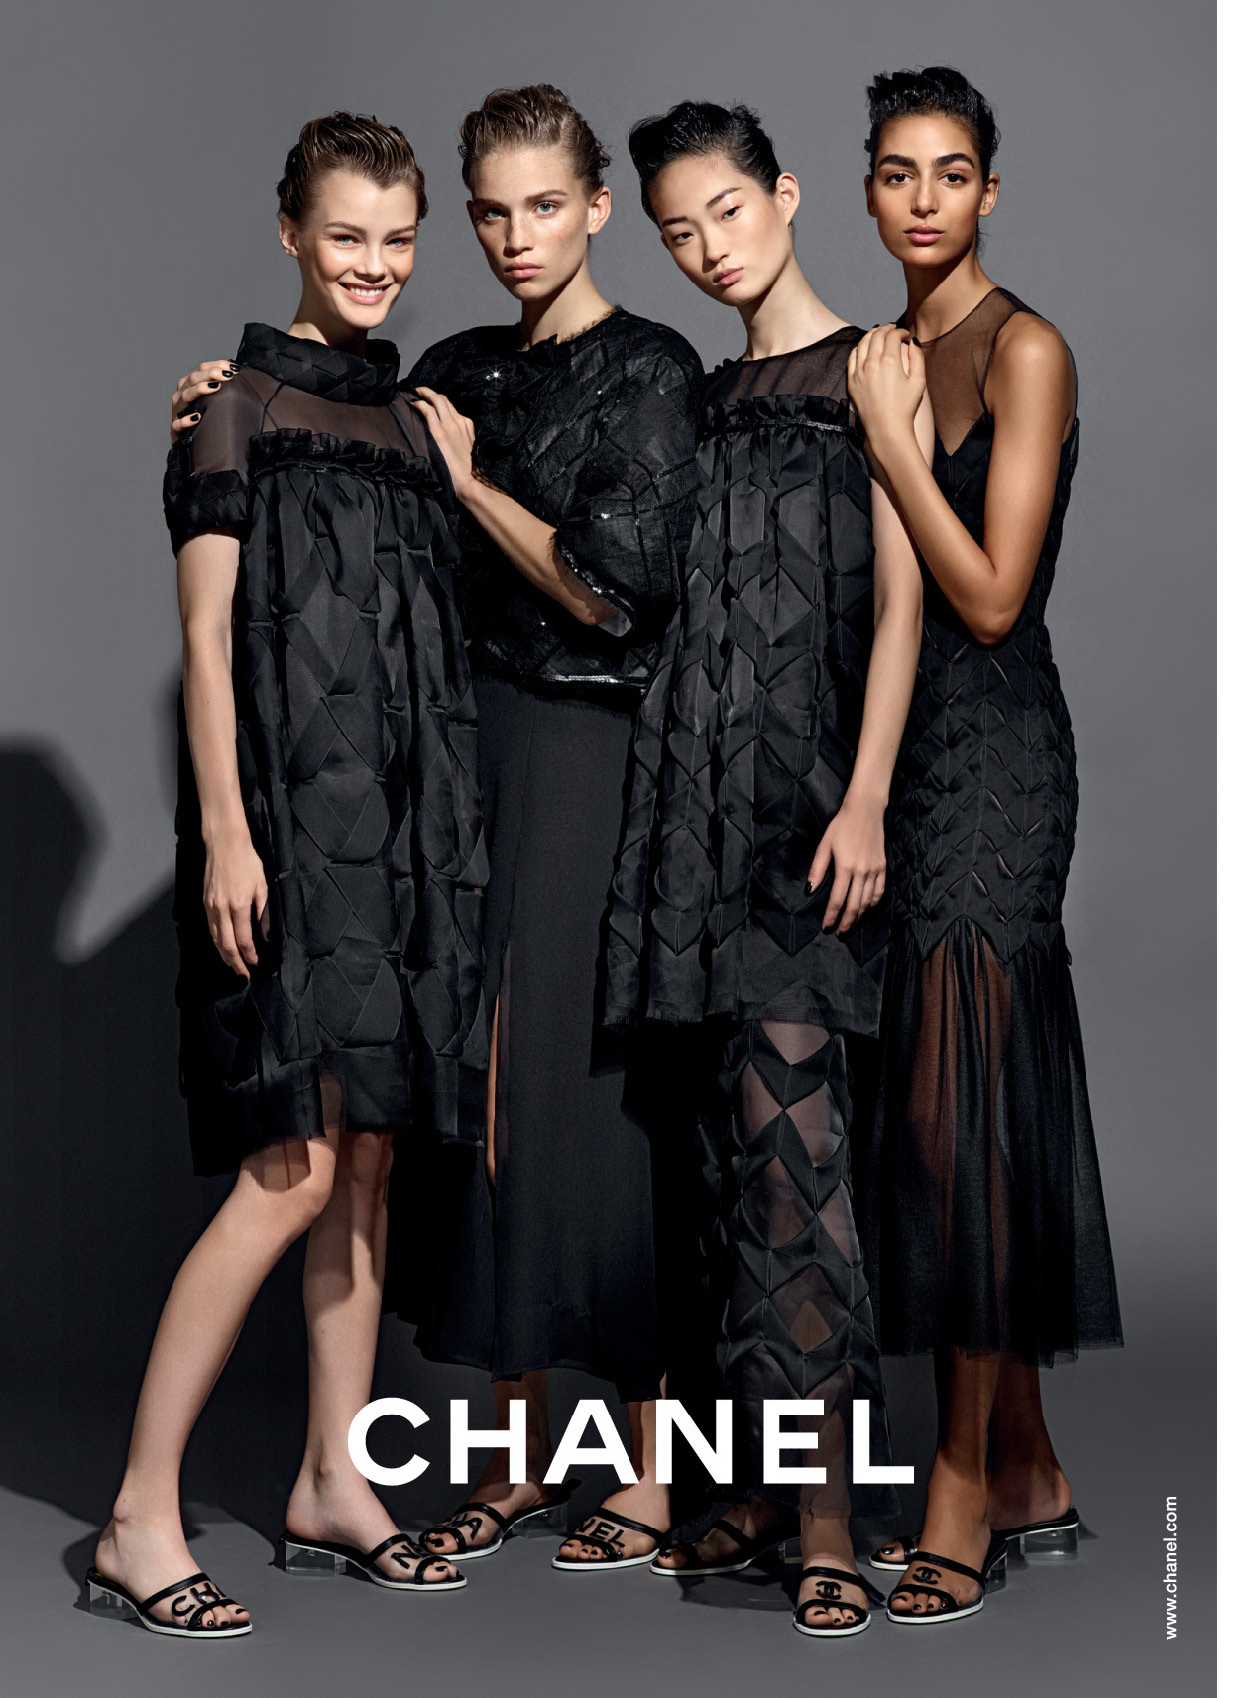 chanel_spring_2019_campaign2.jpg